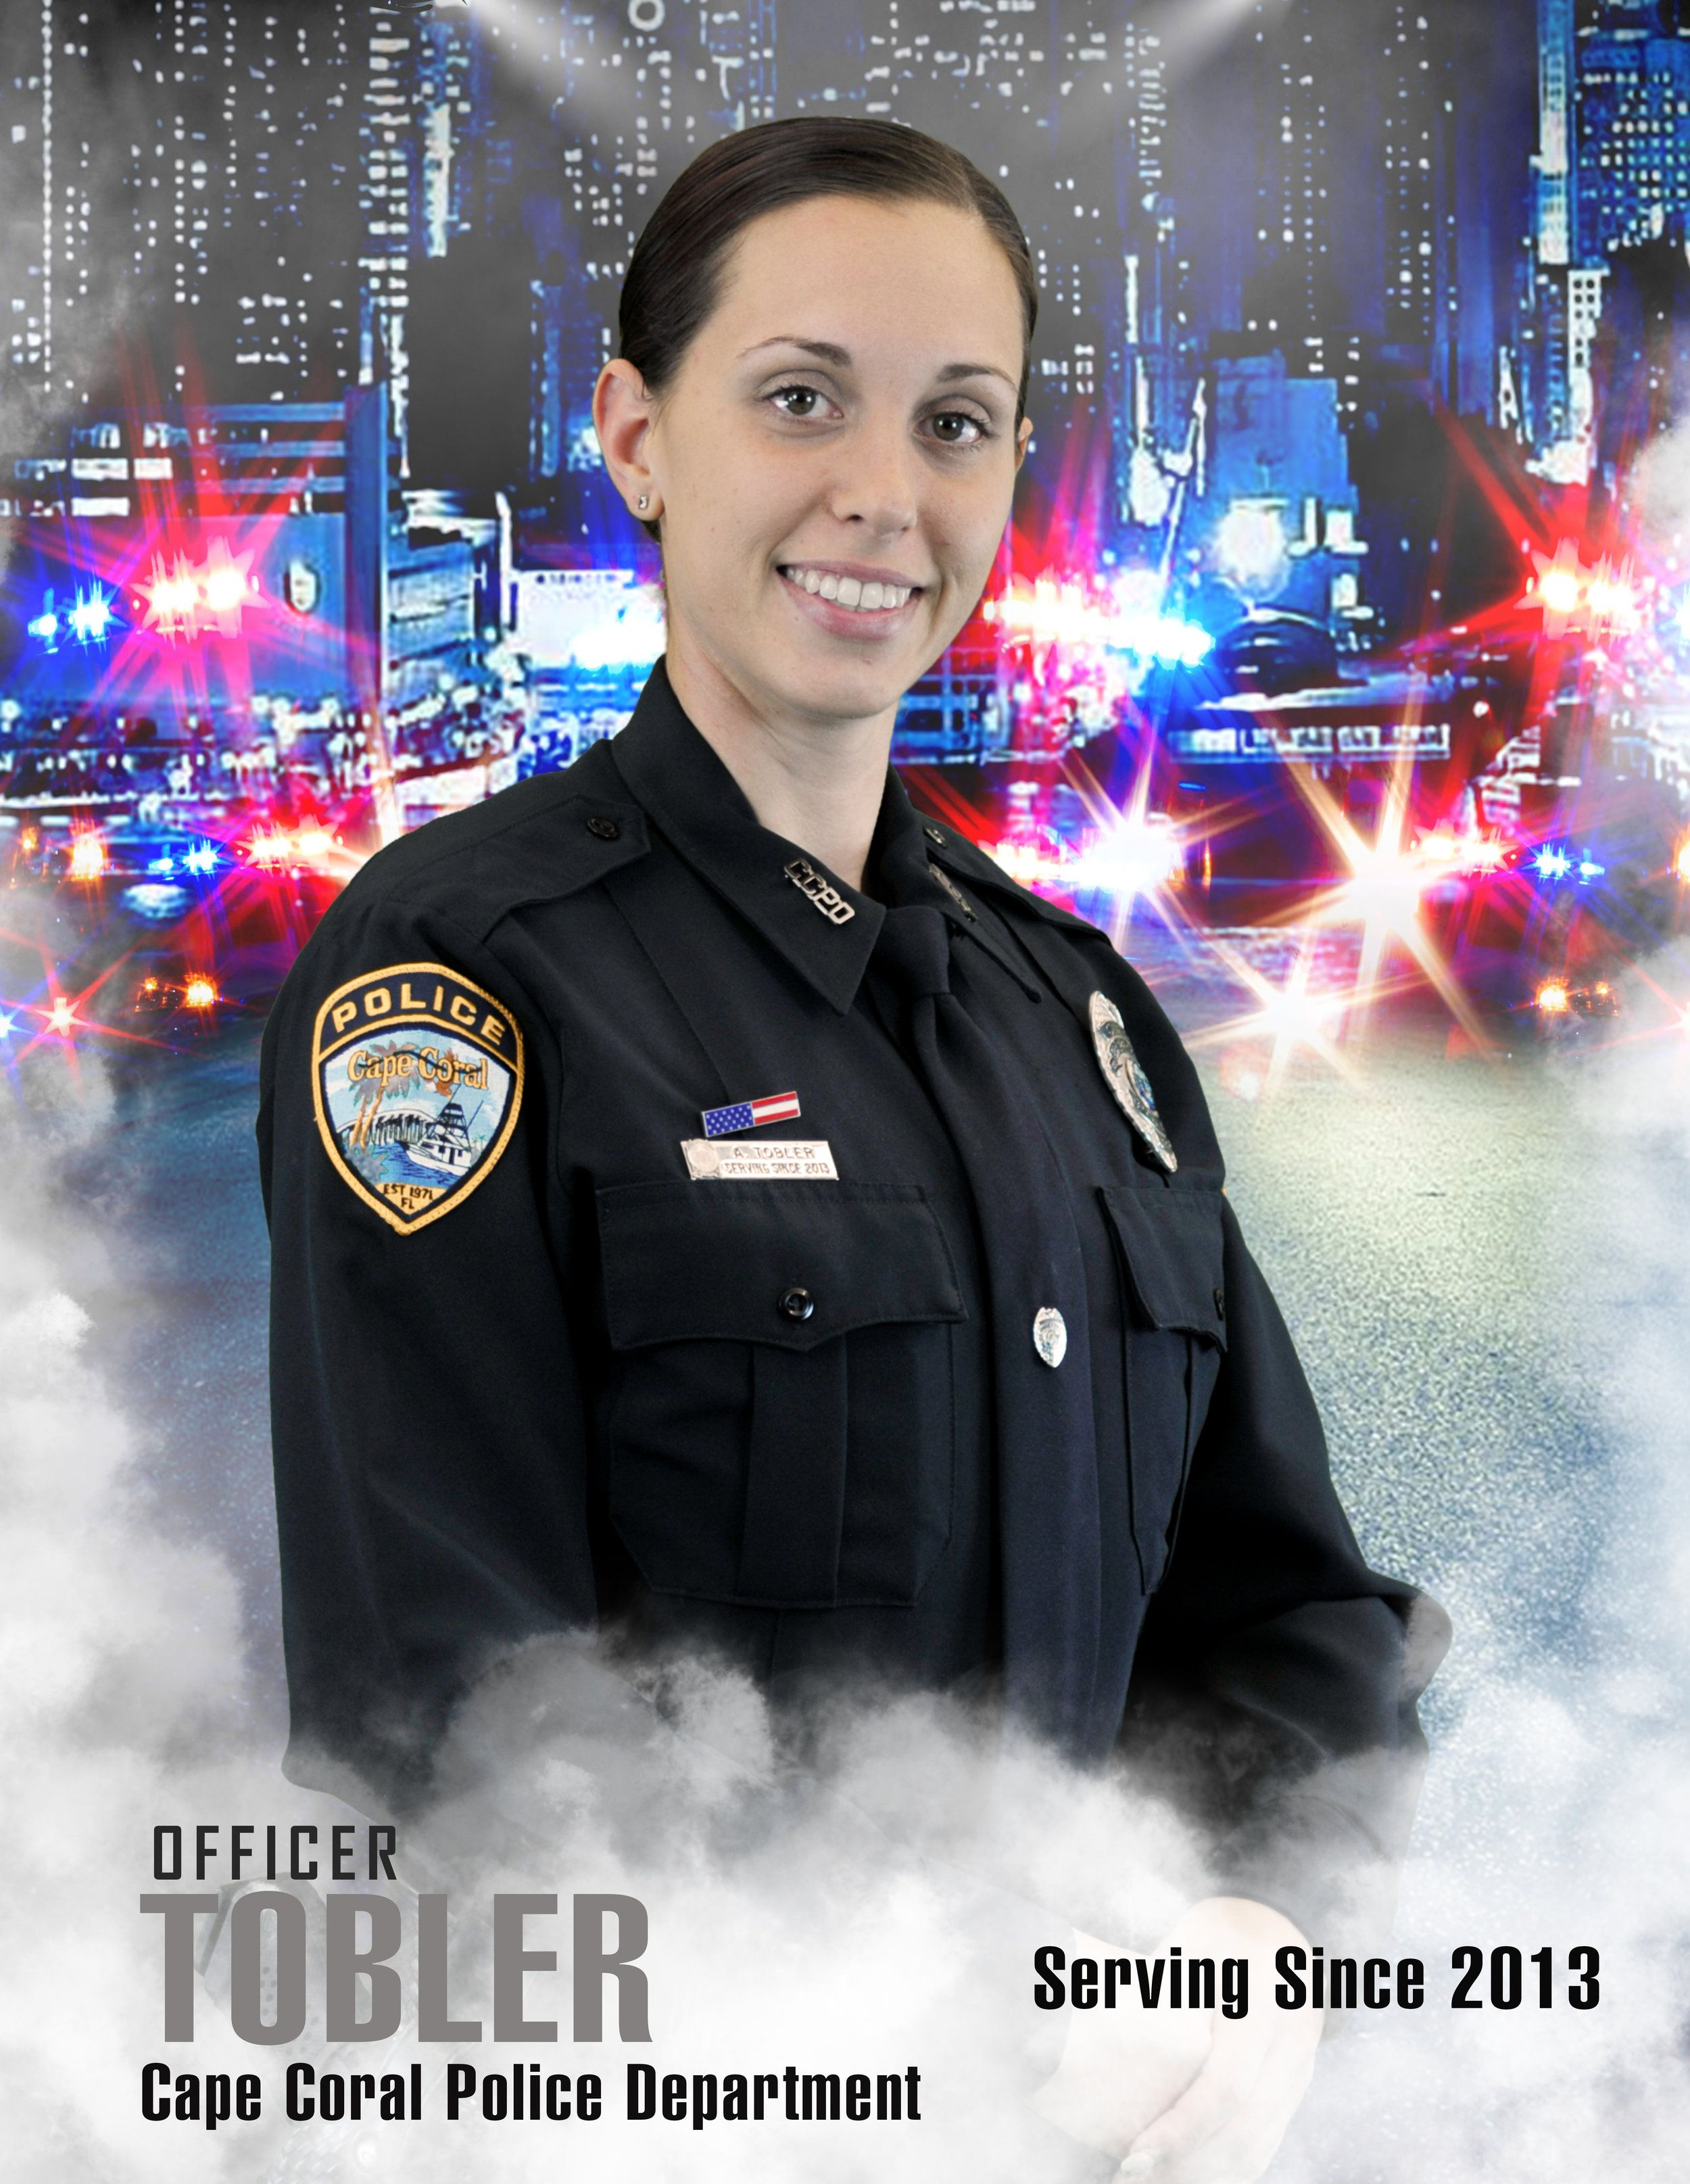 Women S History Month Officer Amanda Tobler Cape Coral Police Department Women In History Womens History Month Police Department